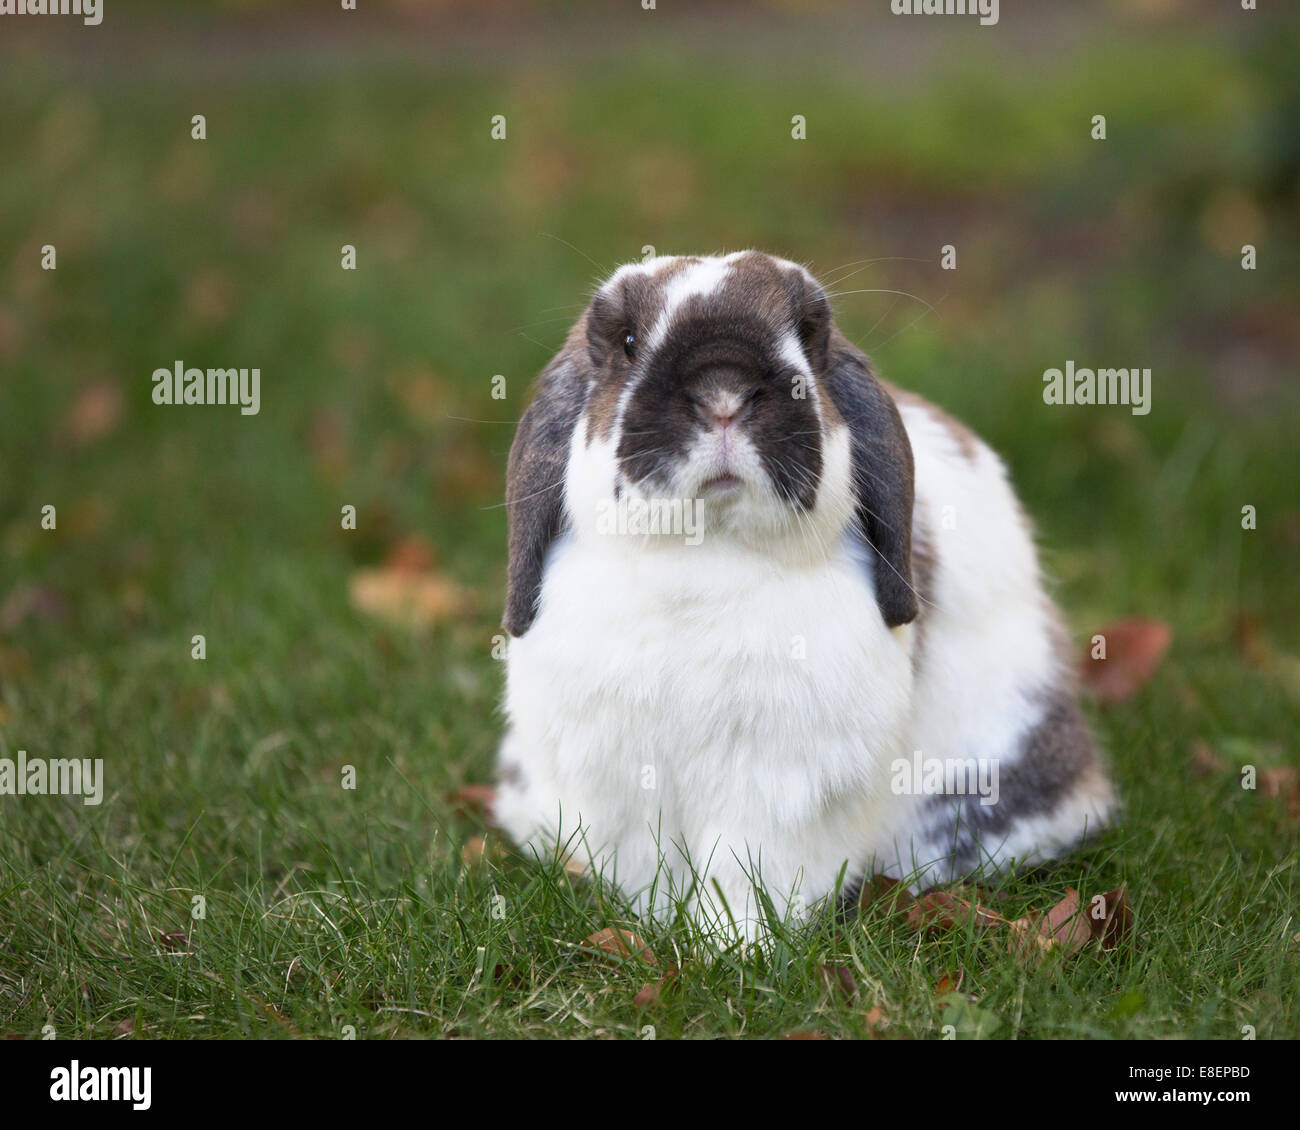 Holland Lop dwarf rabbit outdoors on lawn. - Stock Image